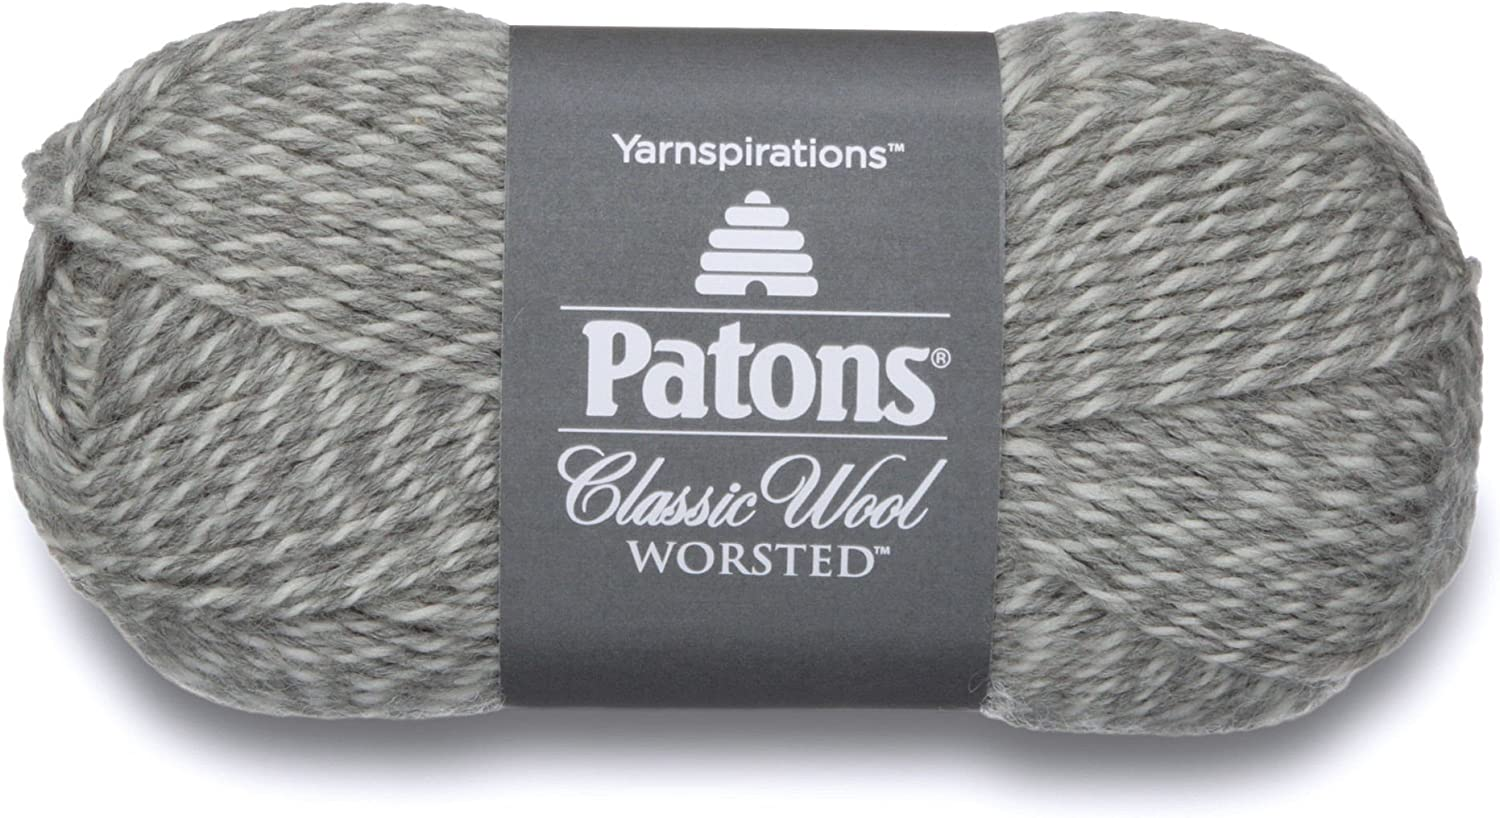 NEW PATONS CLASSIC WOOL WORSTED Yarn 1 skein 100g GREY MIX